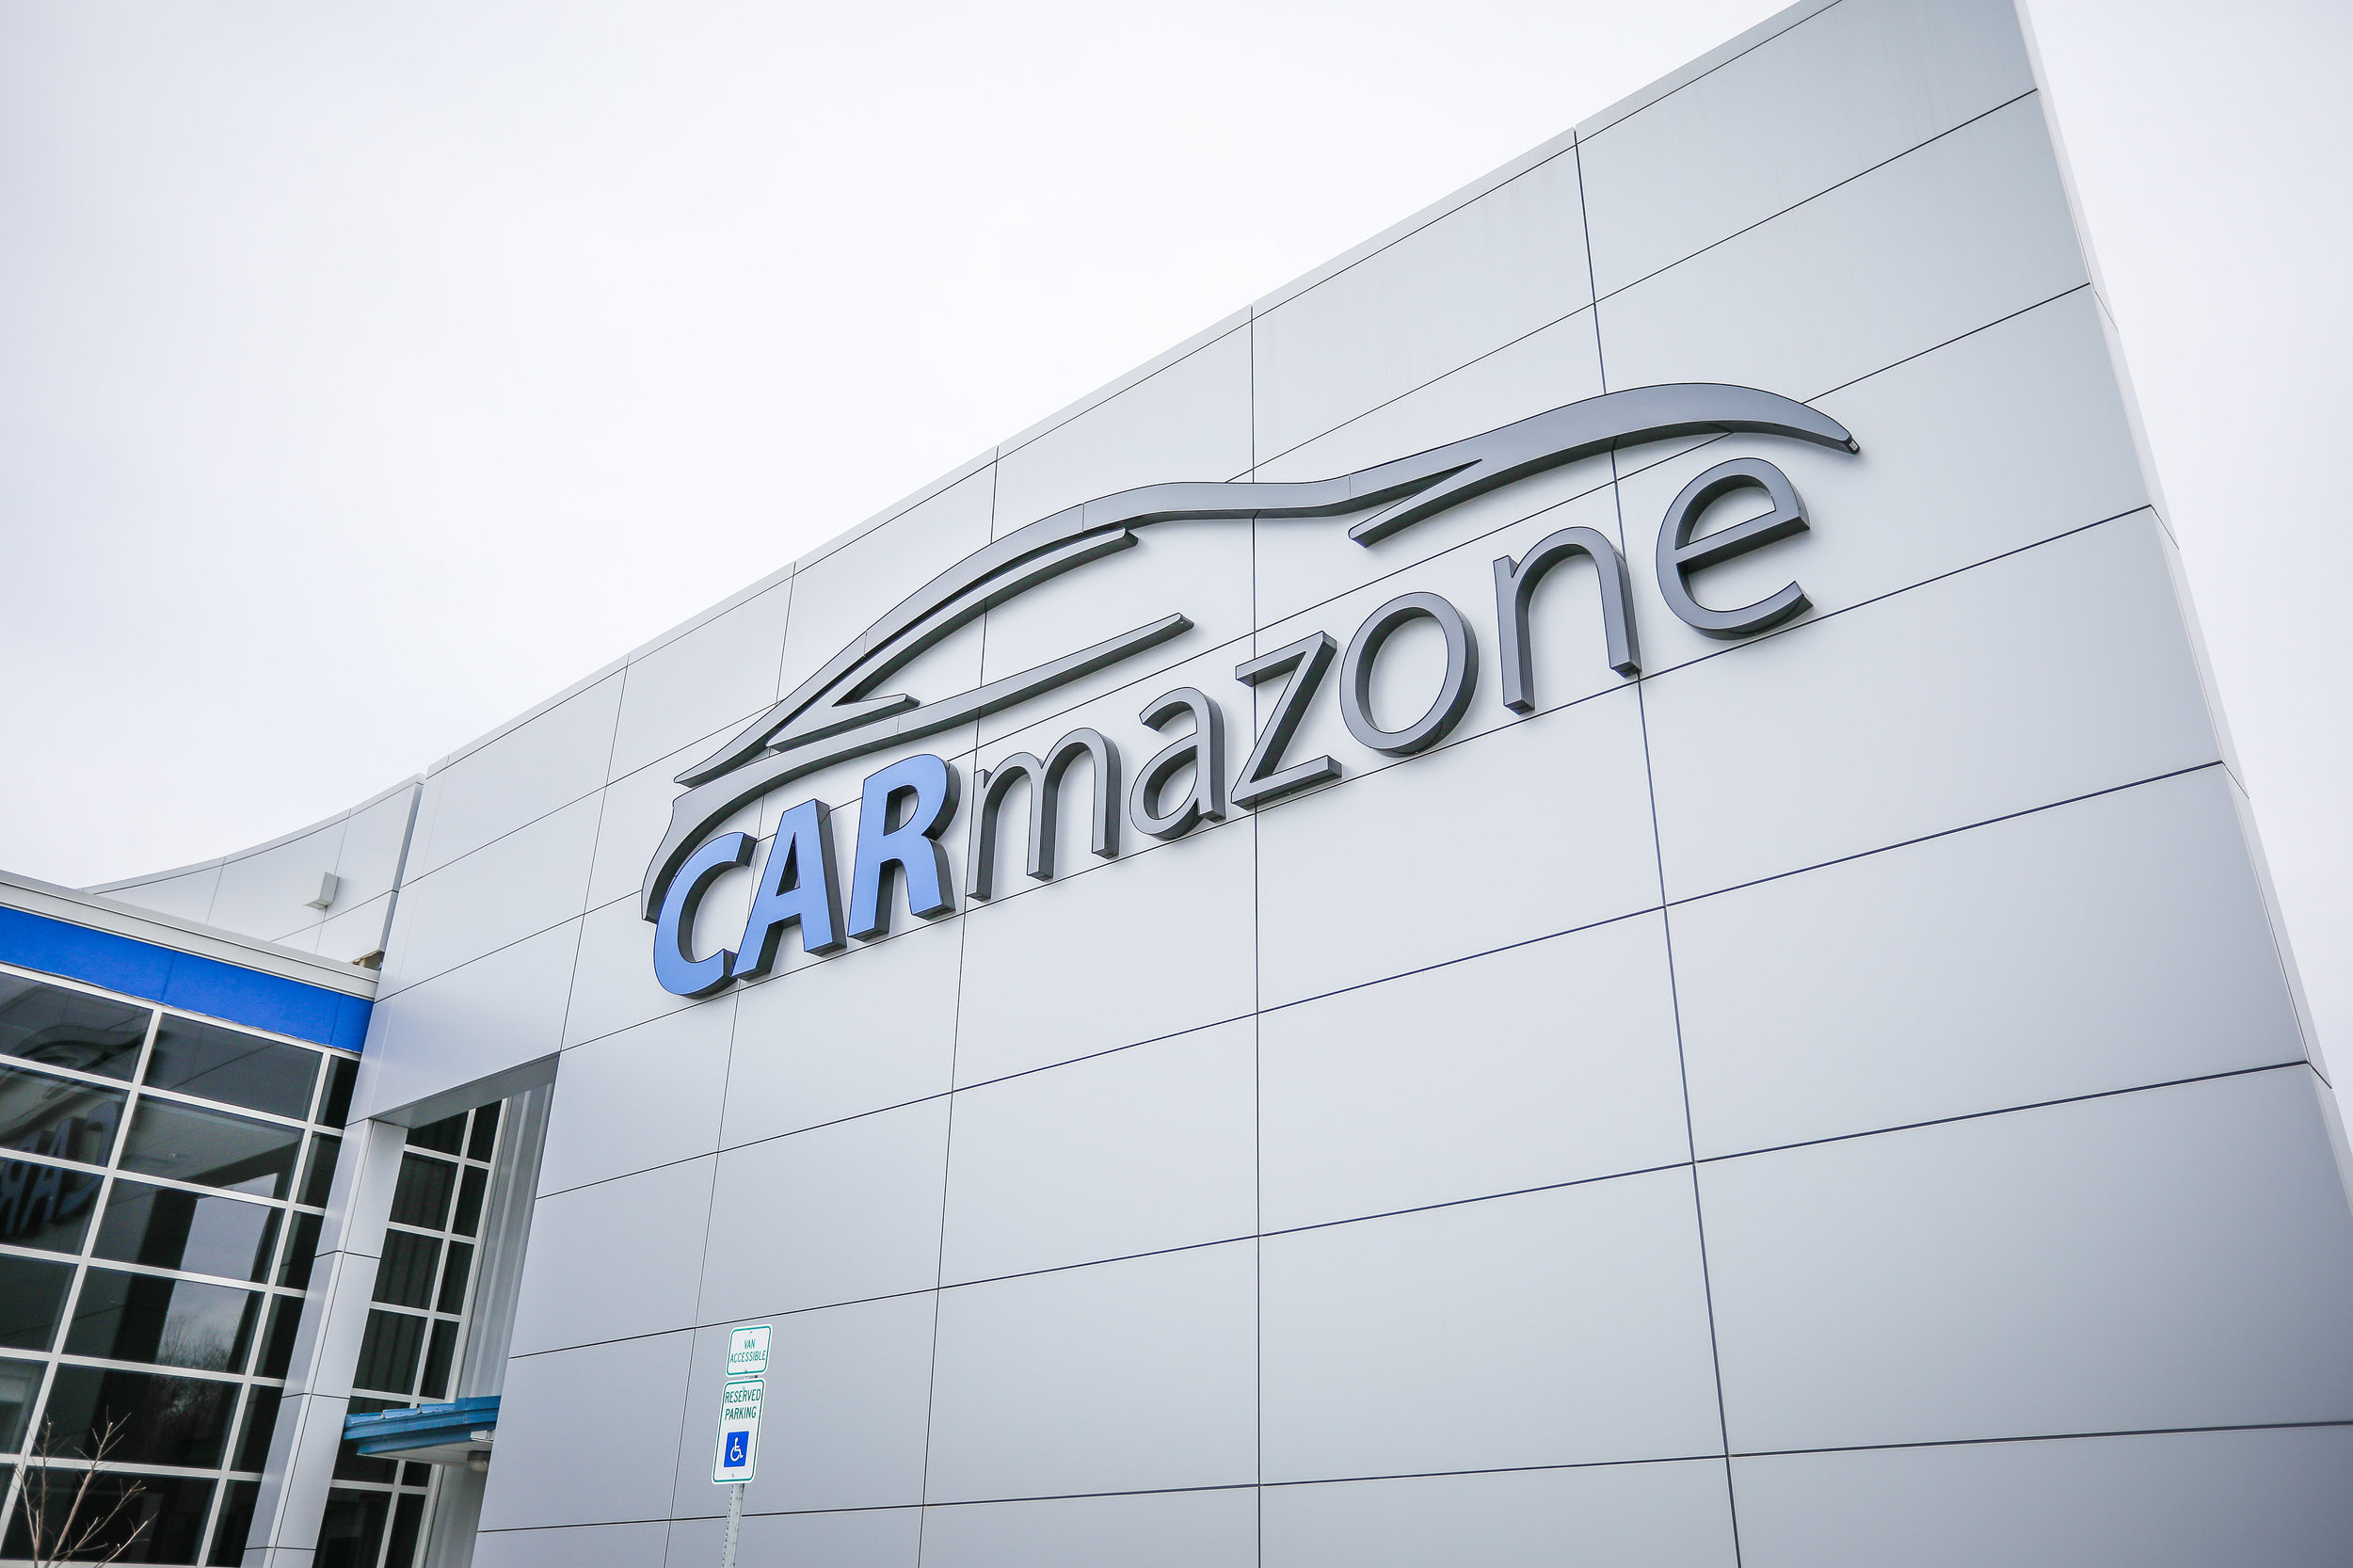 about carmazone - Changing the way you think about buying a car.Car Dealership in Salisbury, NCWhitney Ketner & Megan Brown